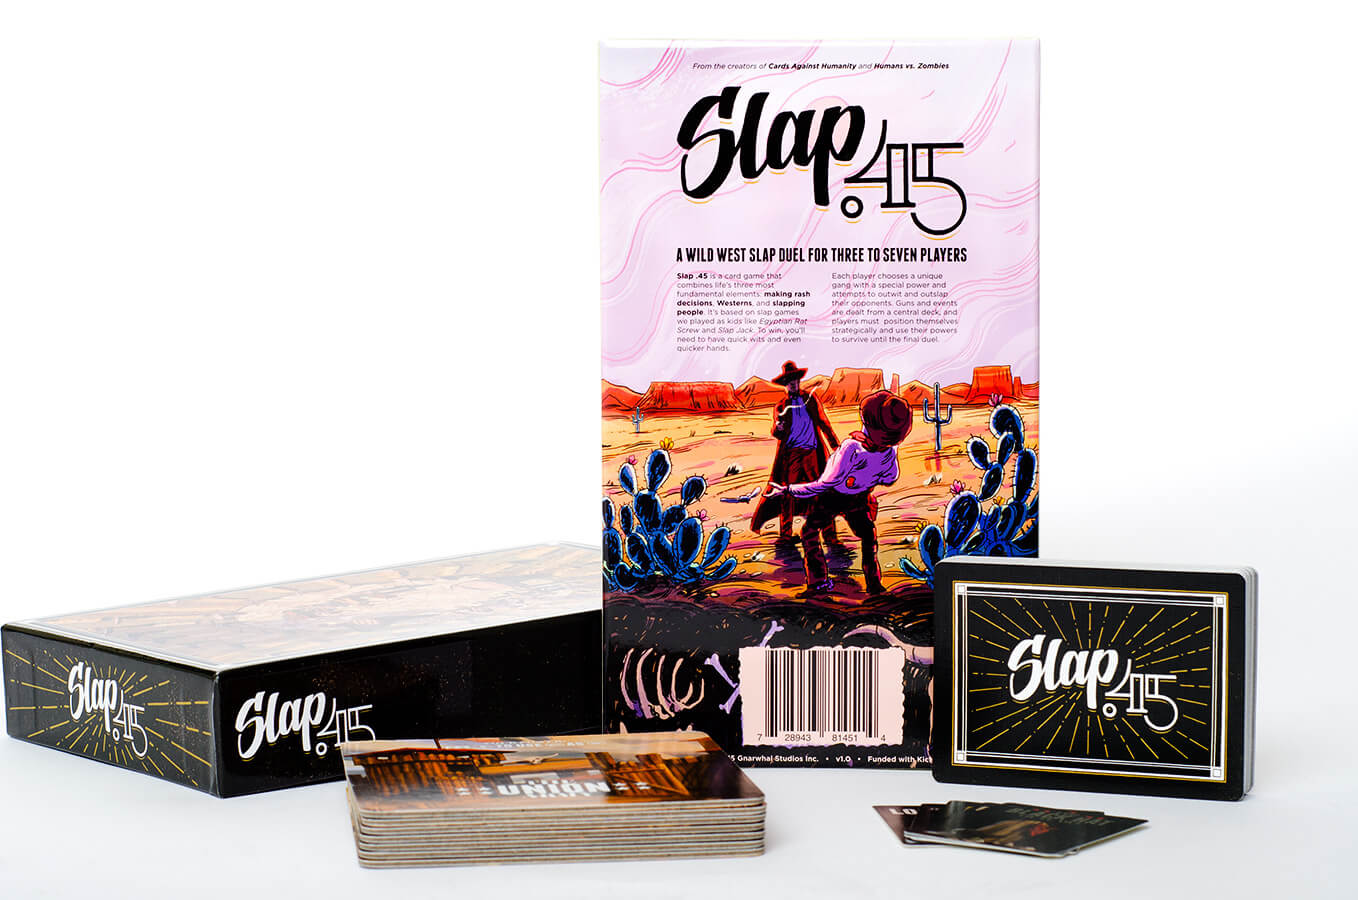 Slap 45 Board Game Product Photography by Carrie Morgan